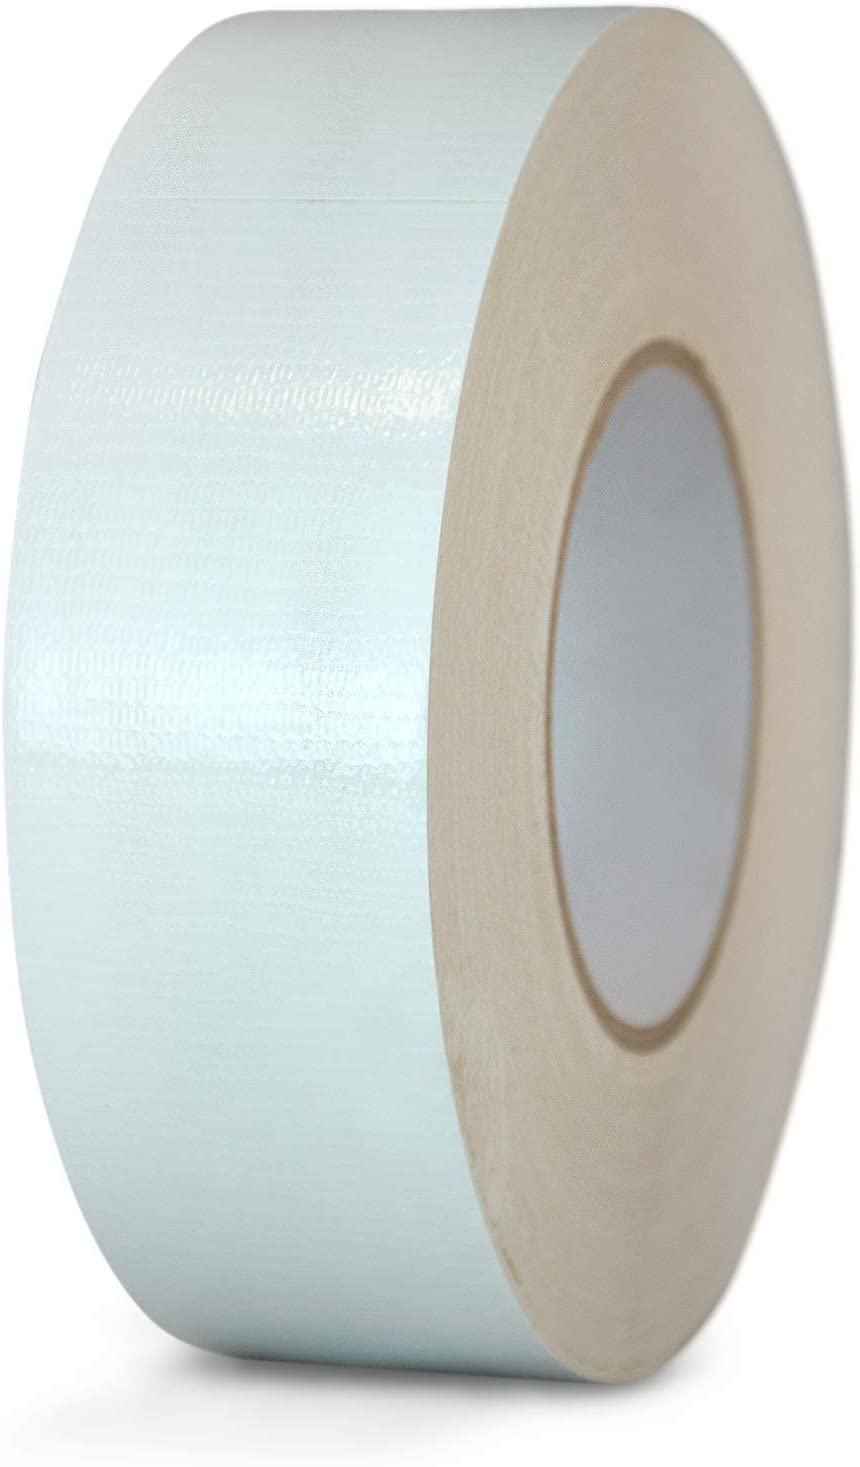 MAT Duct Tape White Industrial Grade, 2 inch x 60 yds. Waterproof, UV Resistant for Crafts, Home Improvement, Repairs, Projects